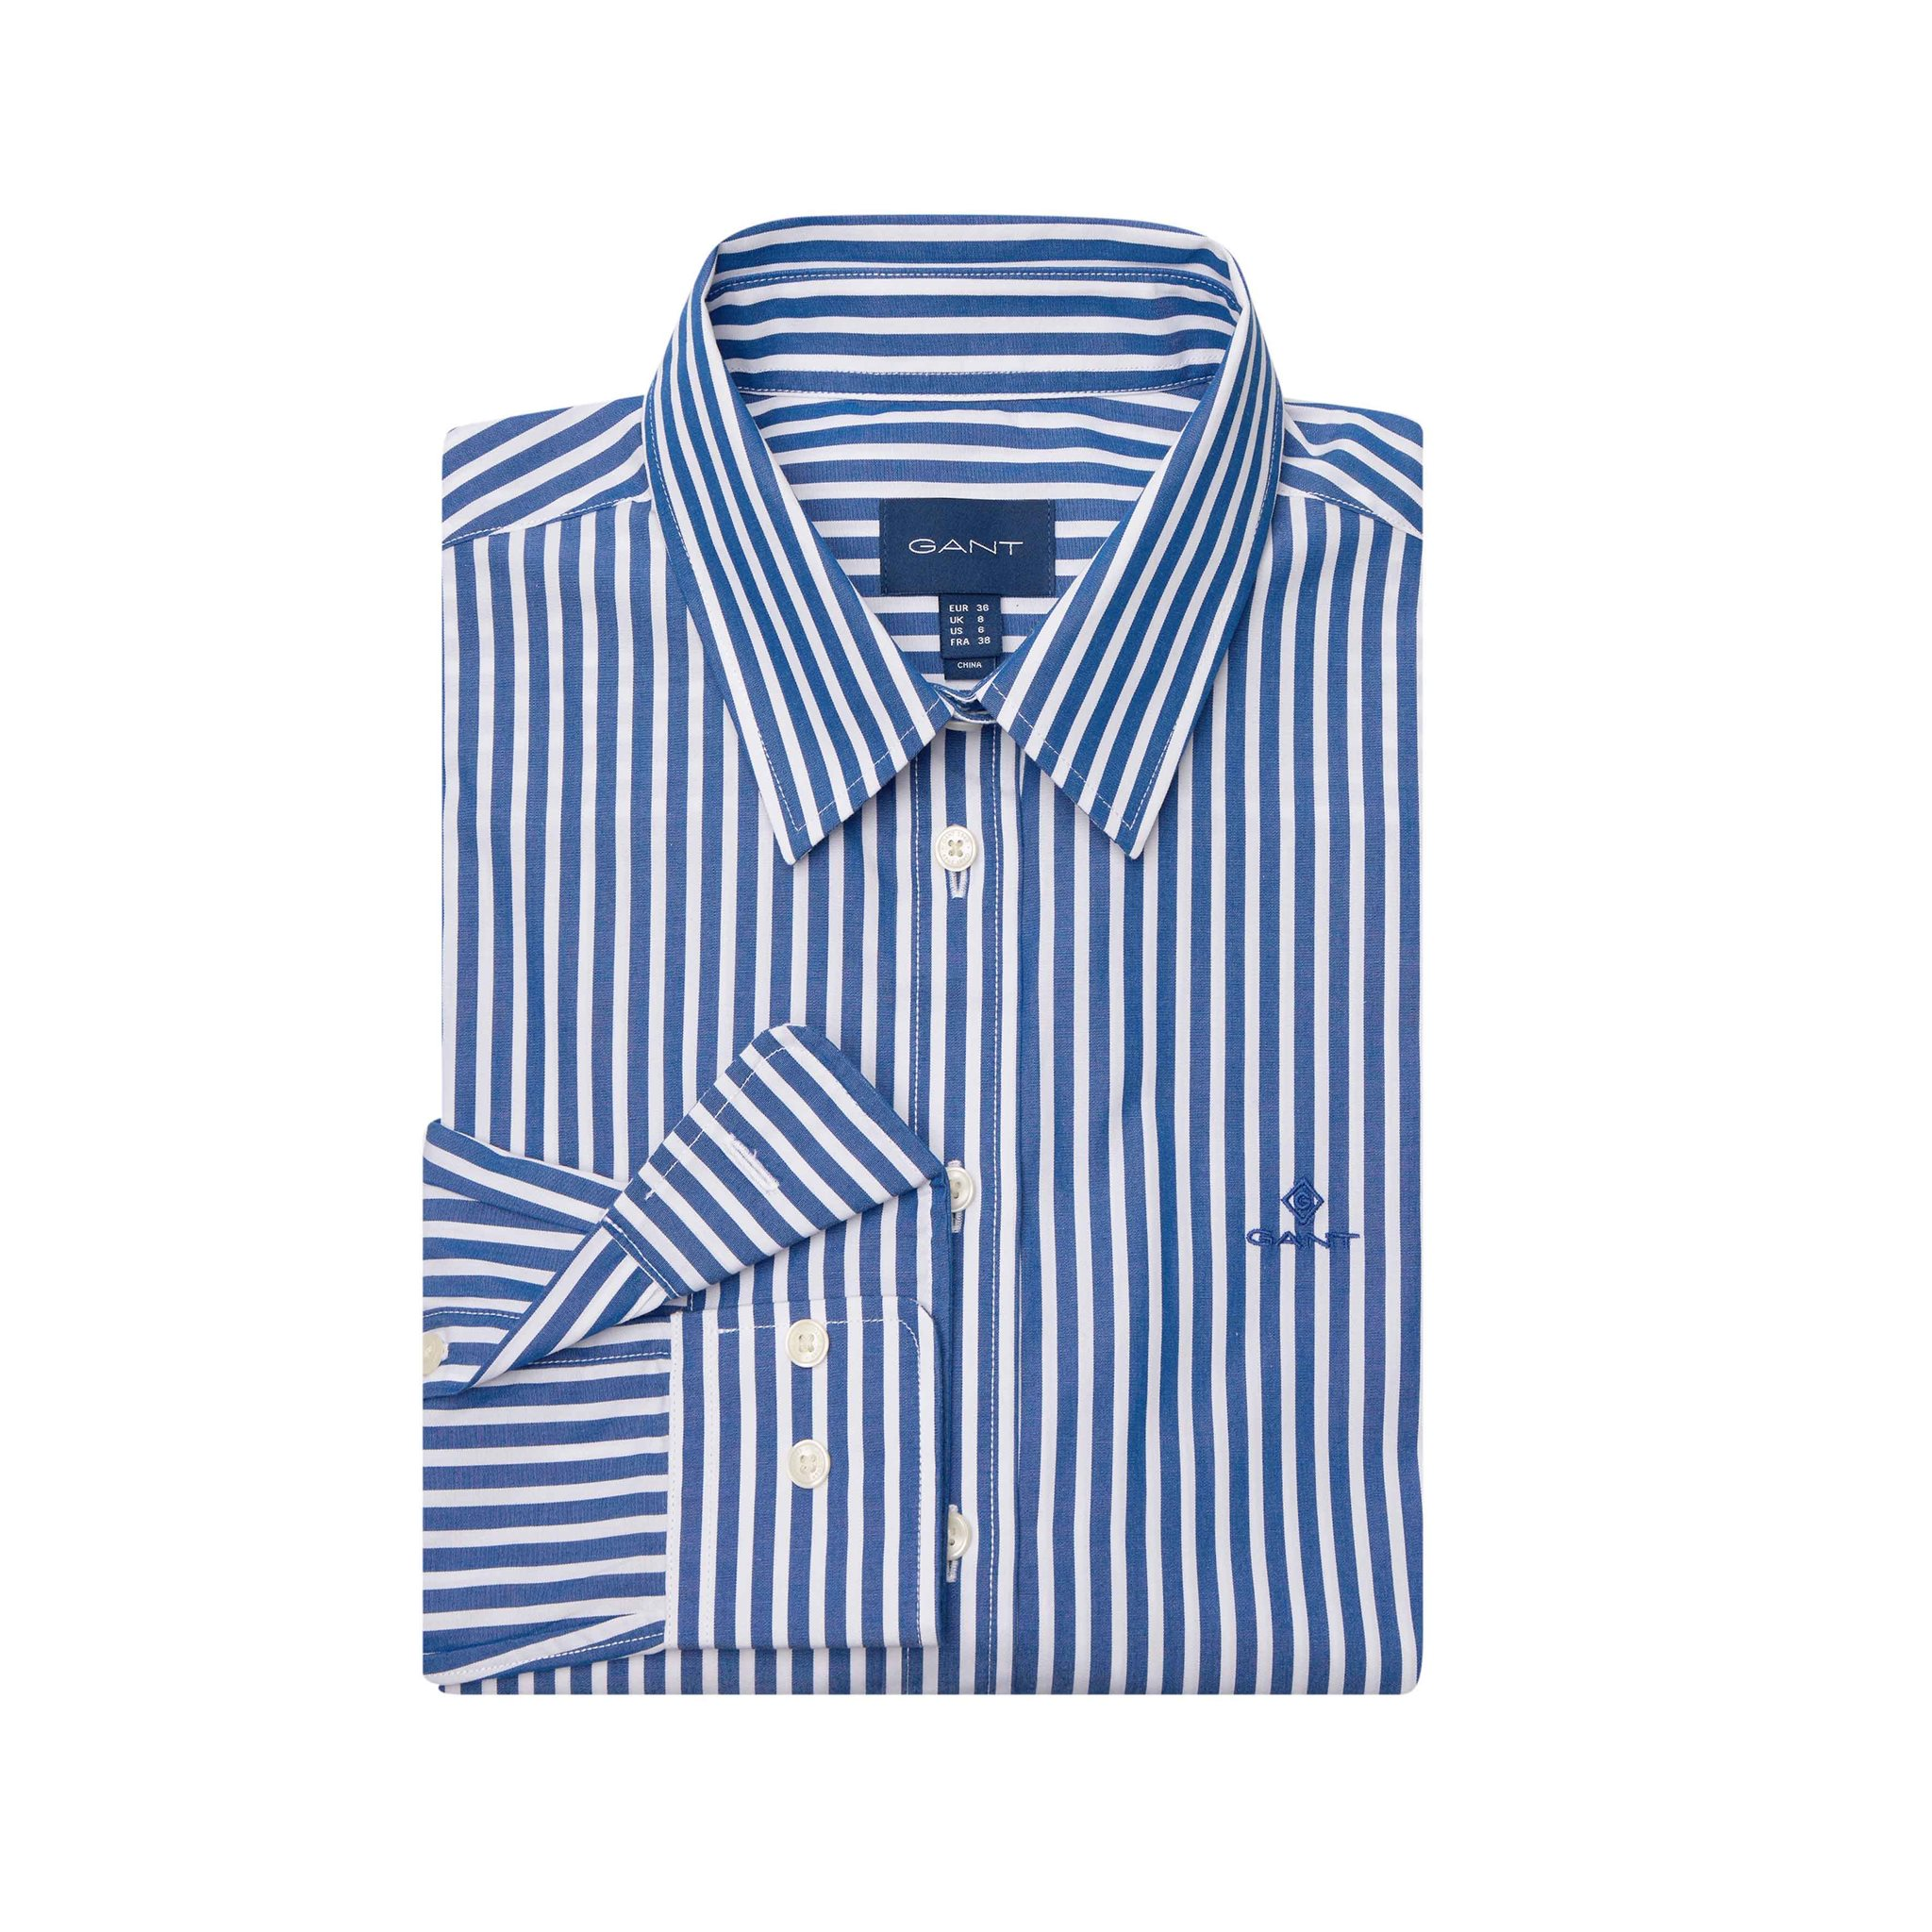 THE BROADCLOTH STRIPED SHIRT GANT WOMAN